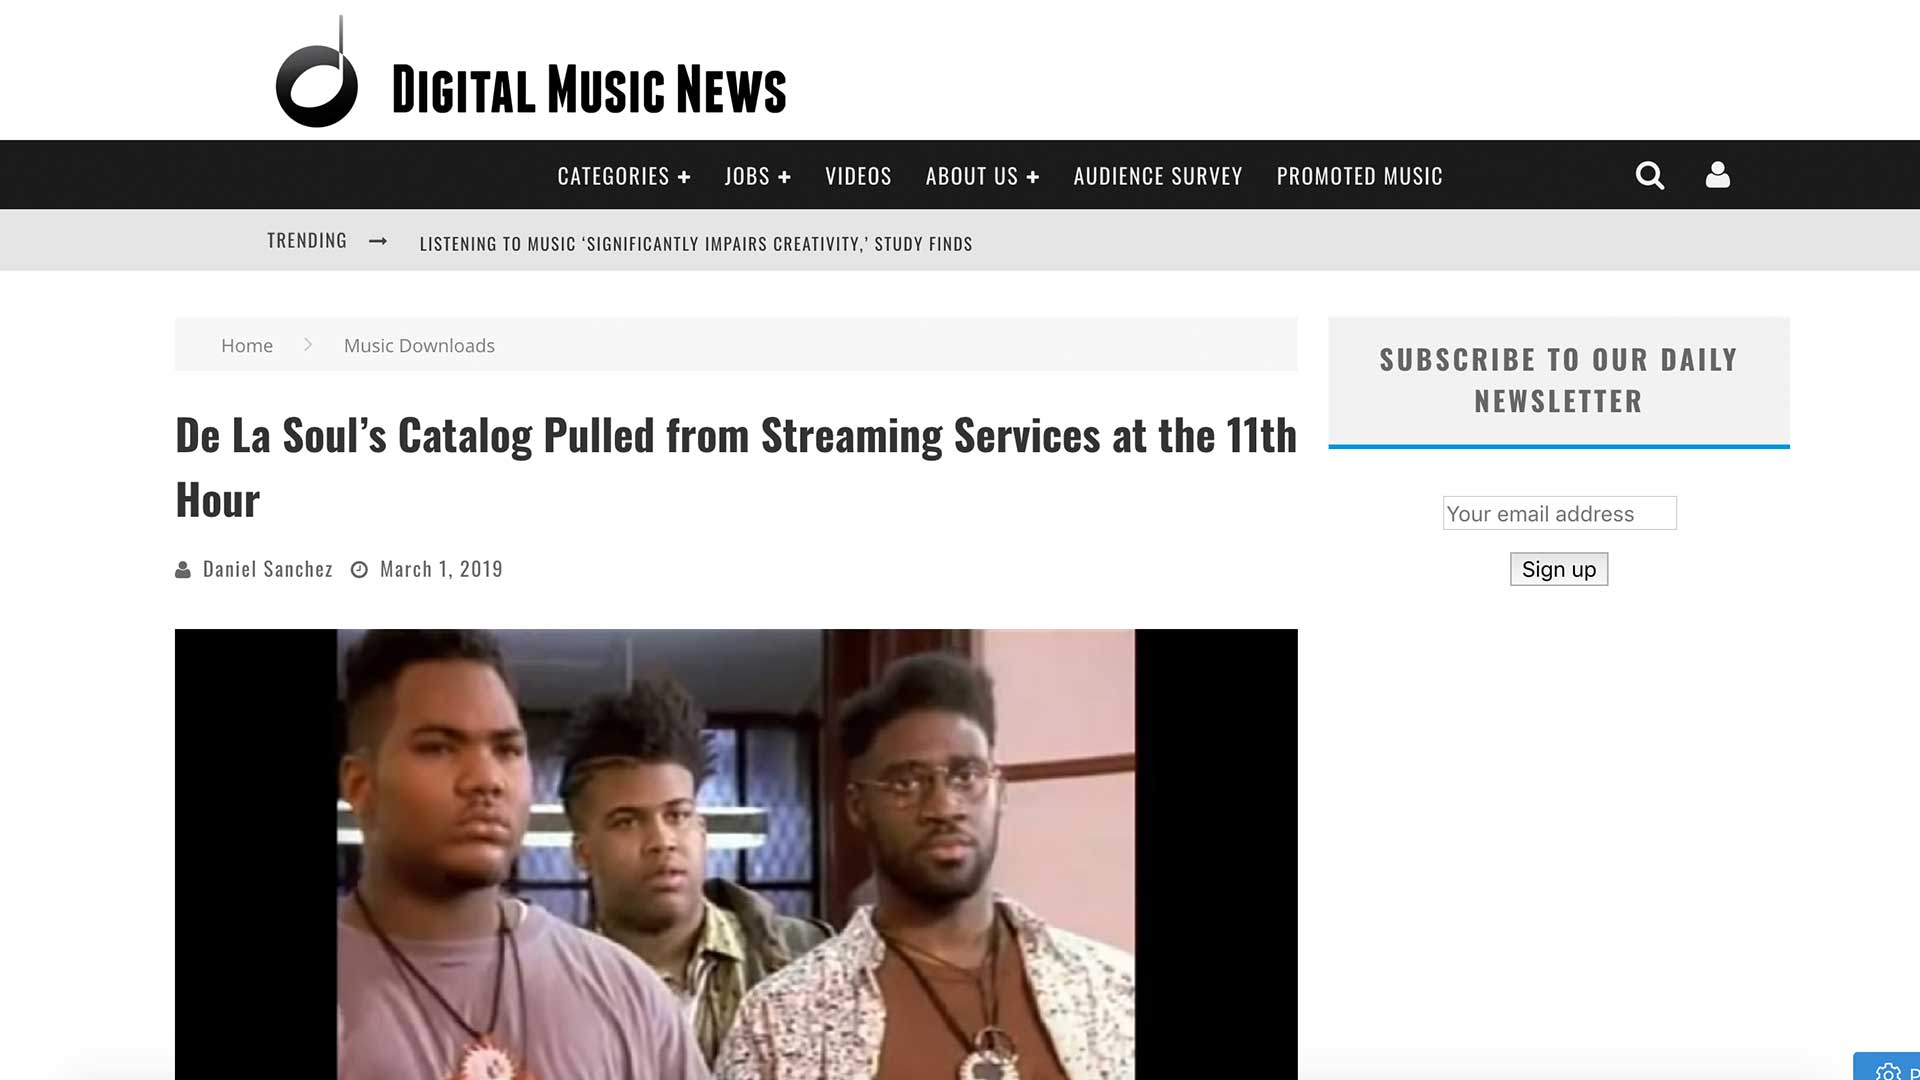 Fairness Rocks News De La Soul's Catalog Pulled from Streaming Services at the 11th Hour